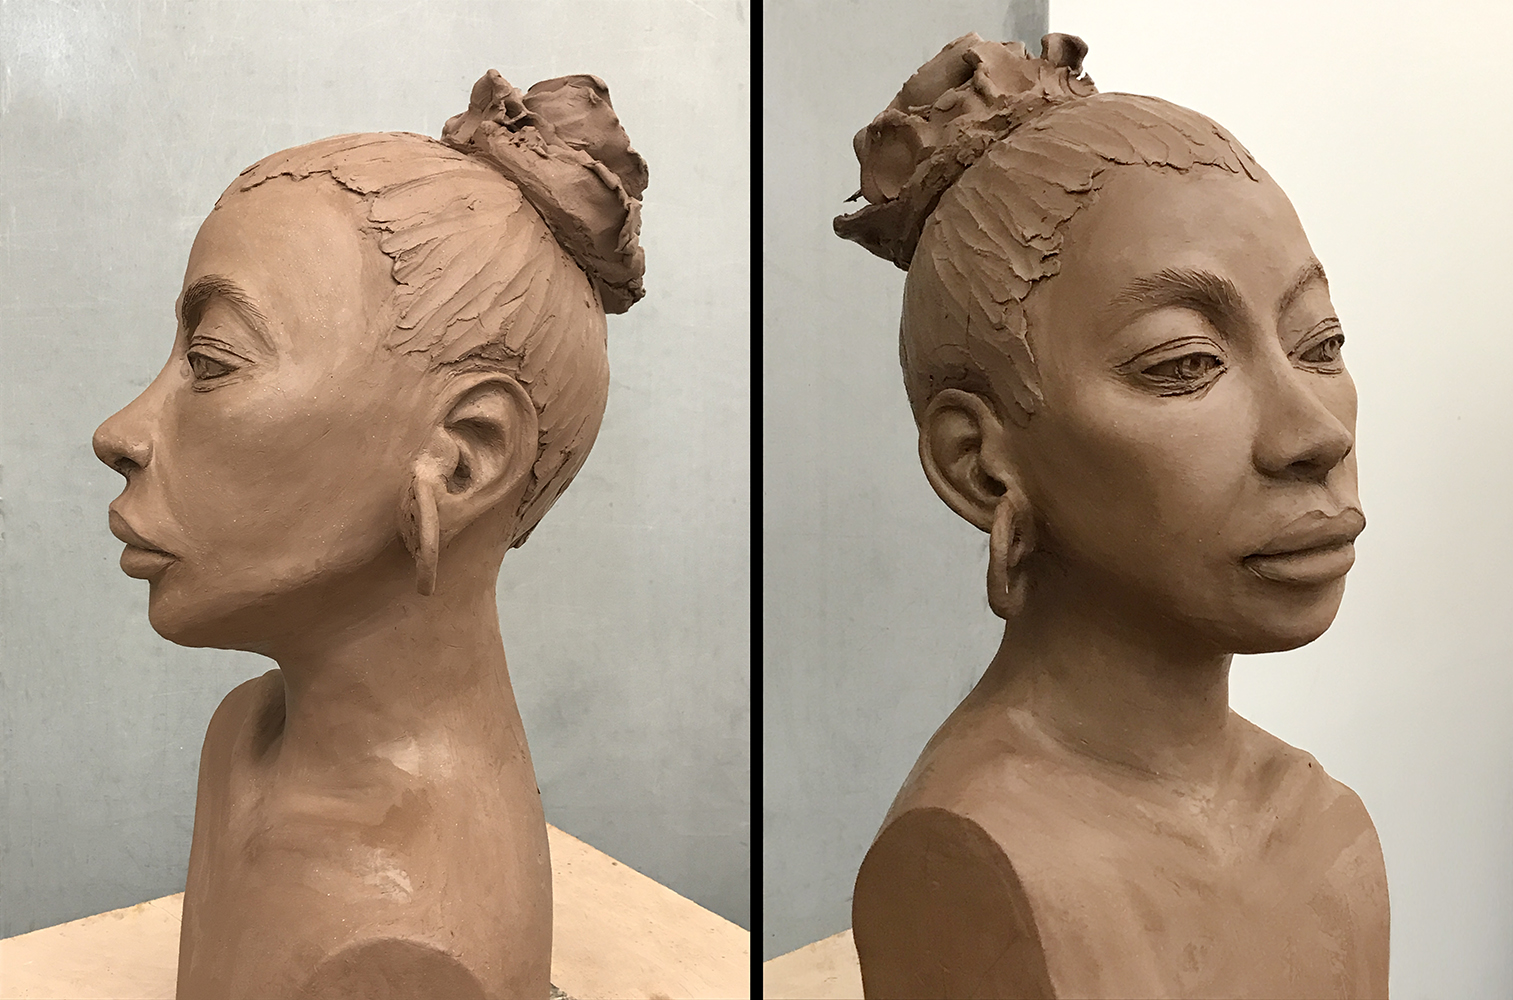 Indira-Cesarine-EARTH-GODDESS-Sculpture-in-Clay-profile-side-view-lr.jpg